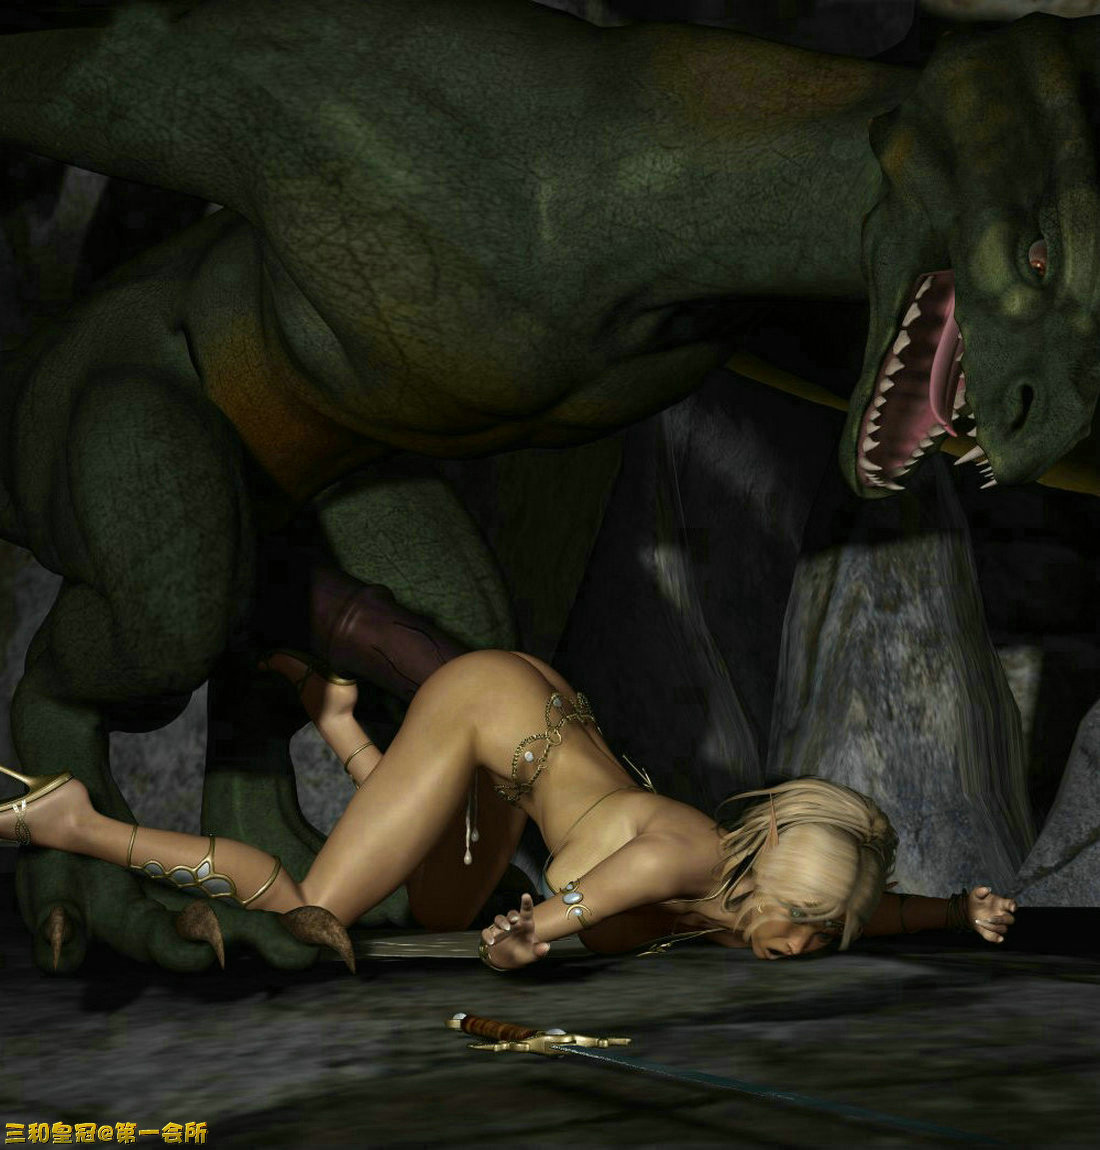 Dragon monster sex exposed photo